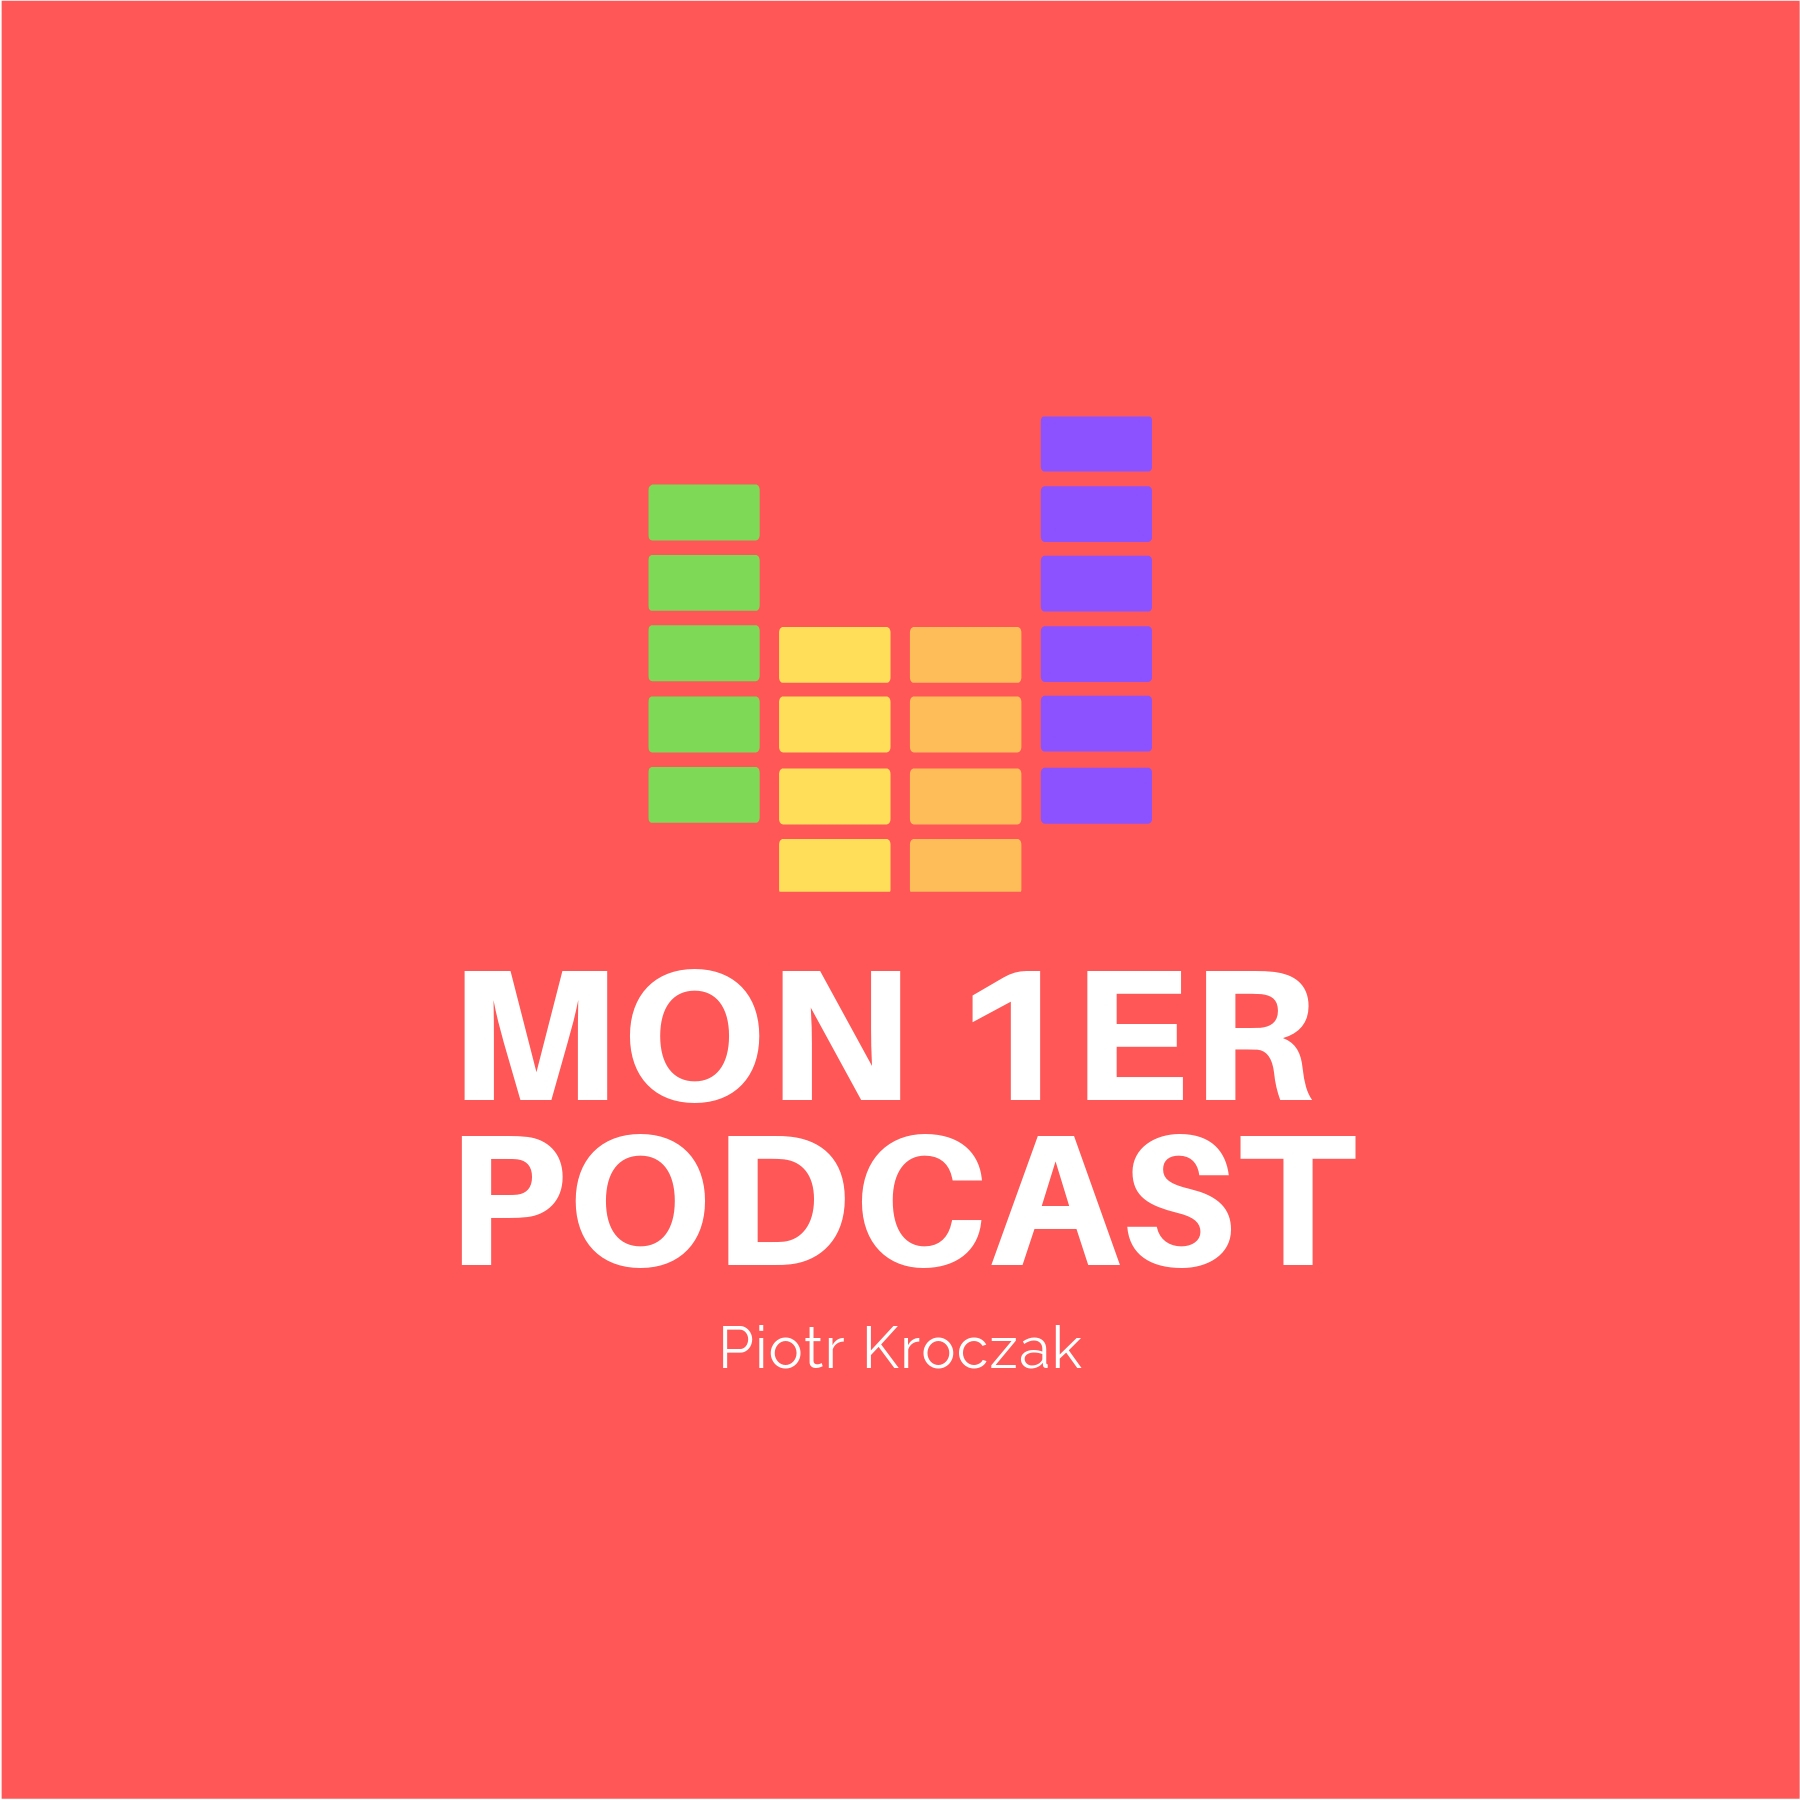 INTRODUCTION : Mon 1er podcast